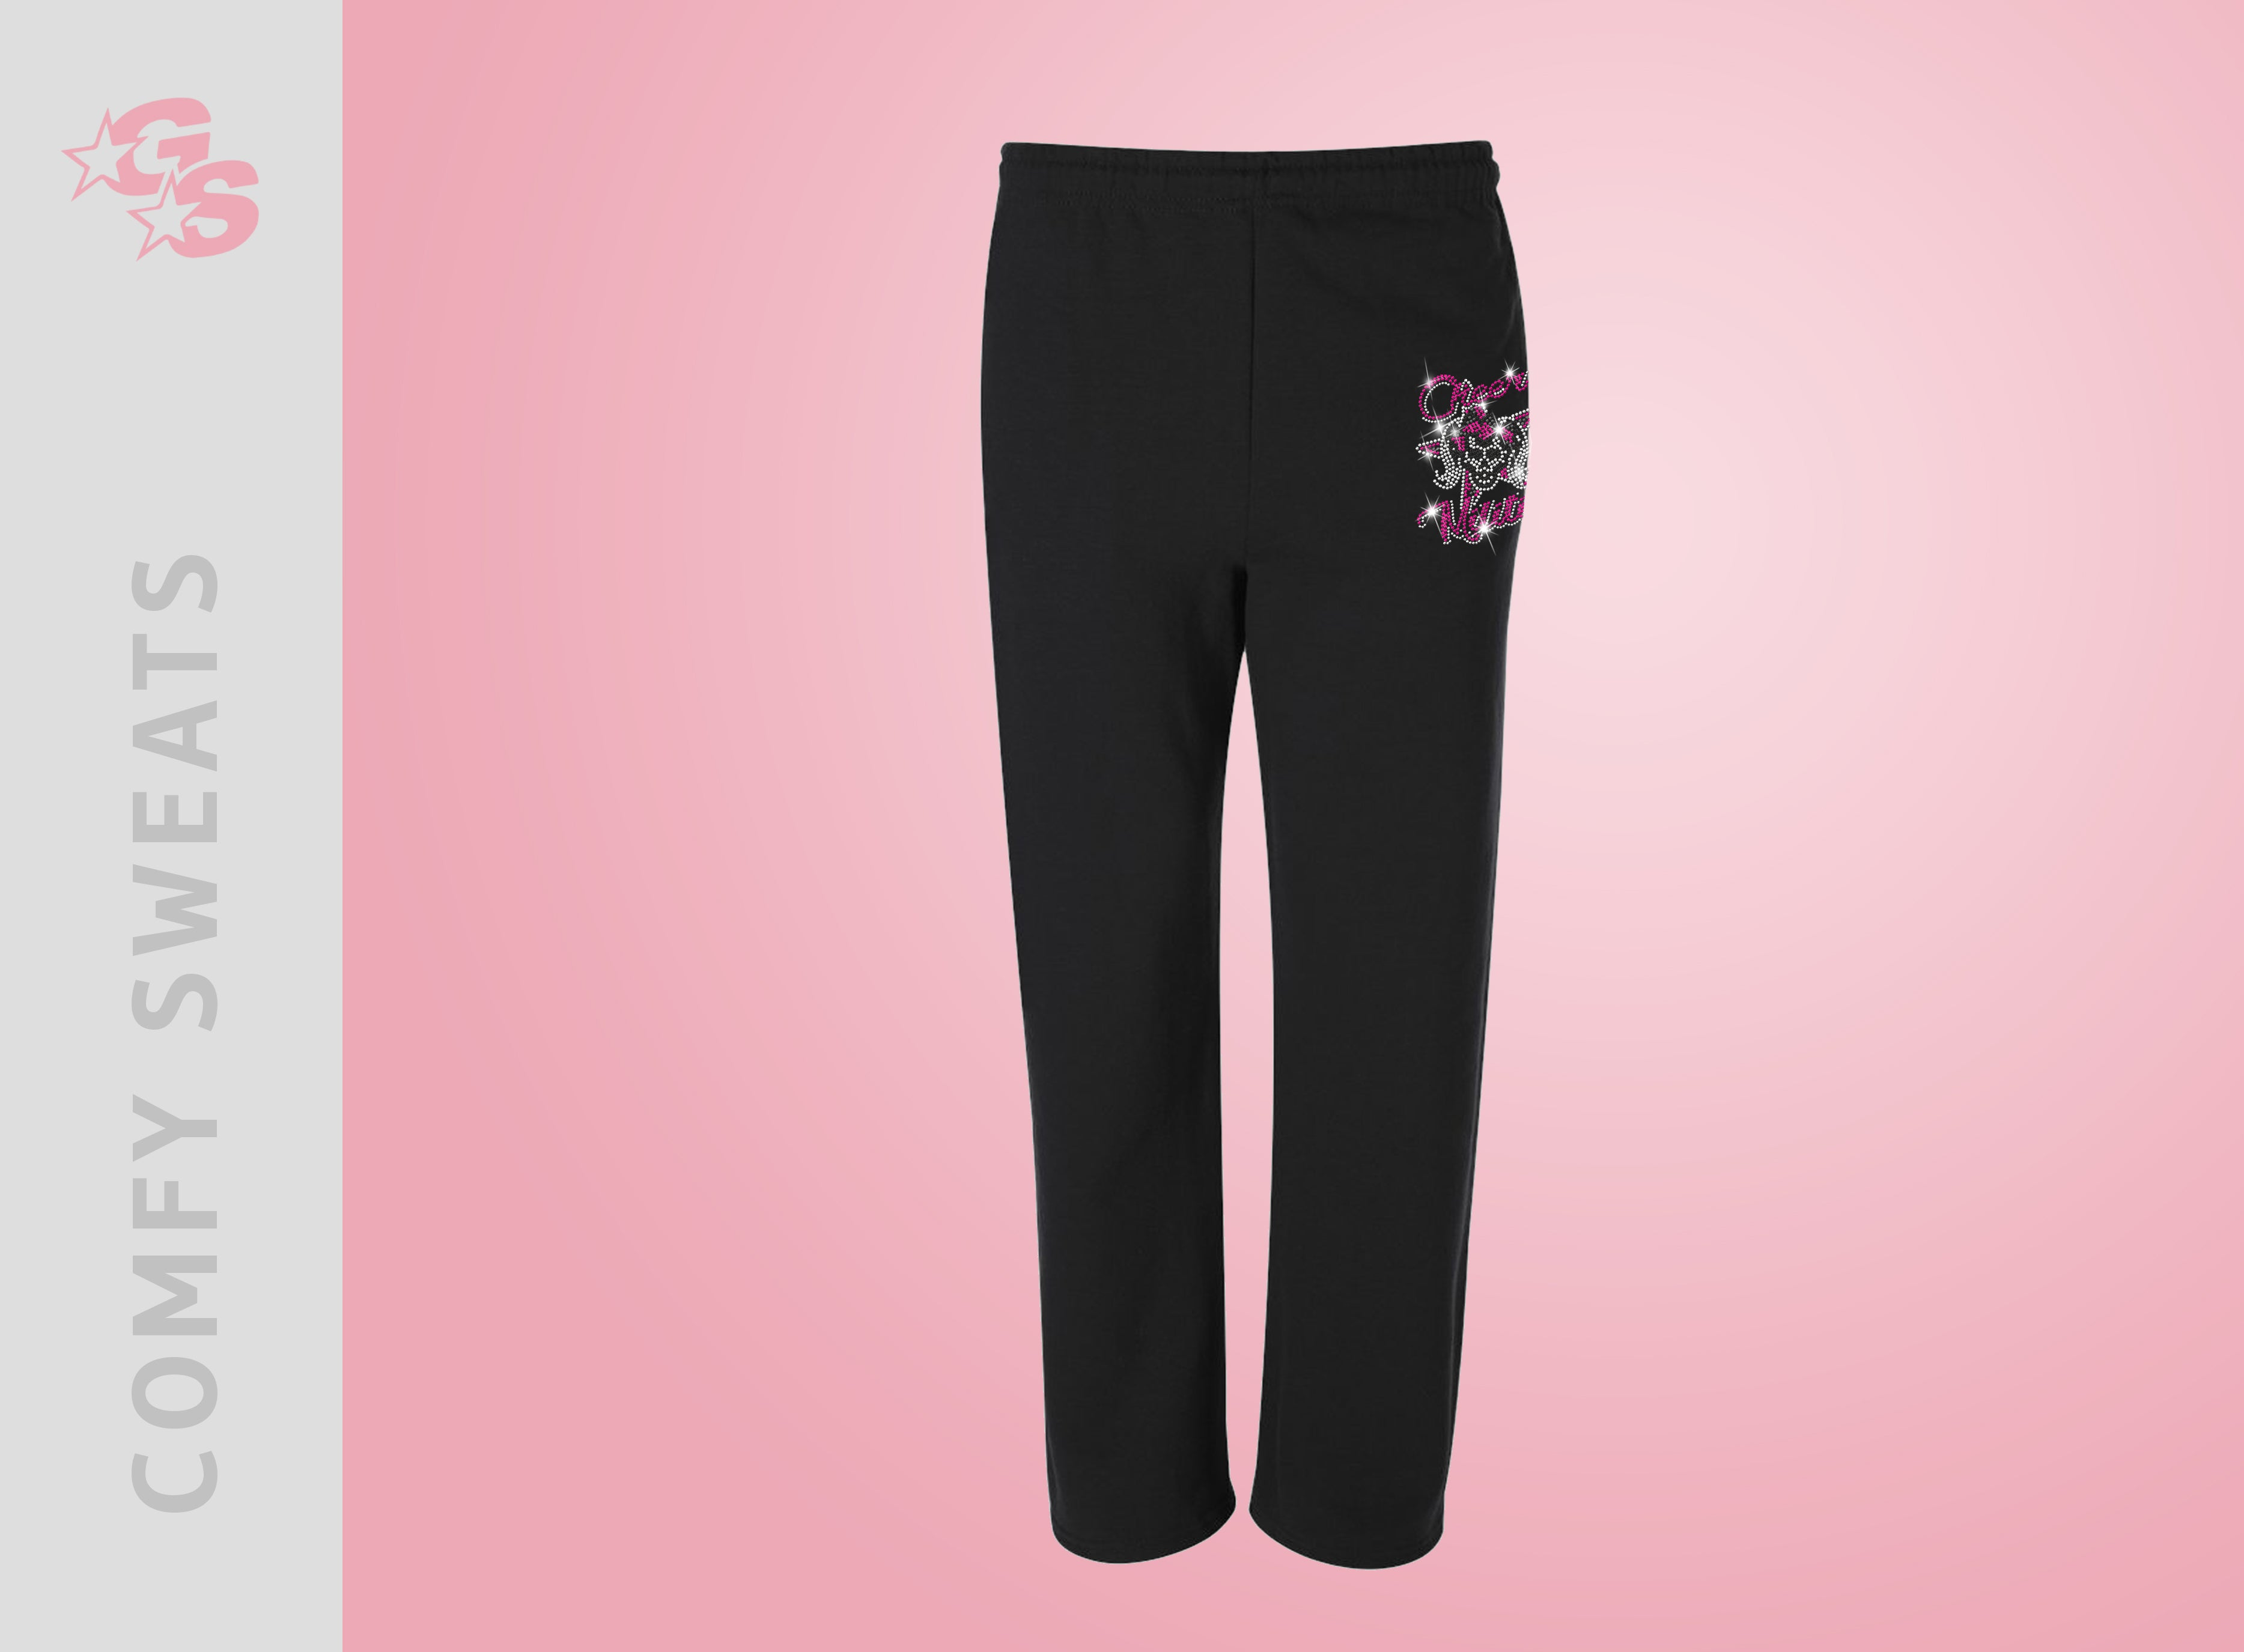 Cheer Militia Comfy Sweats